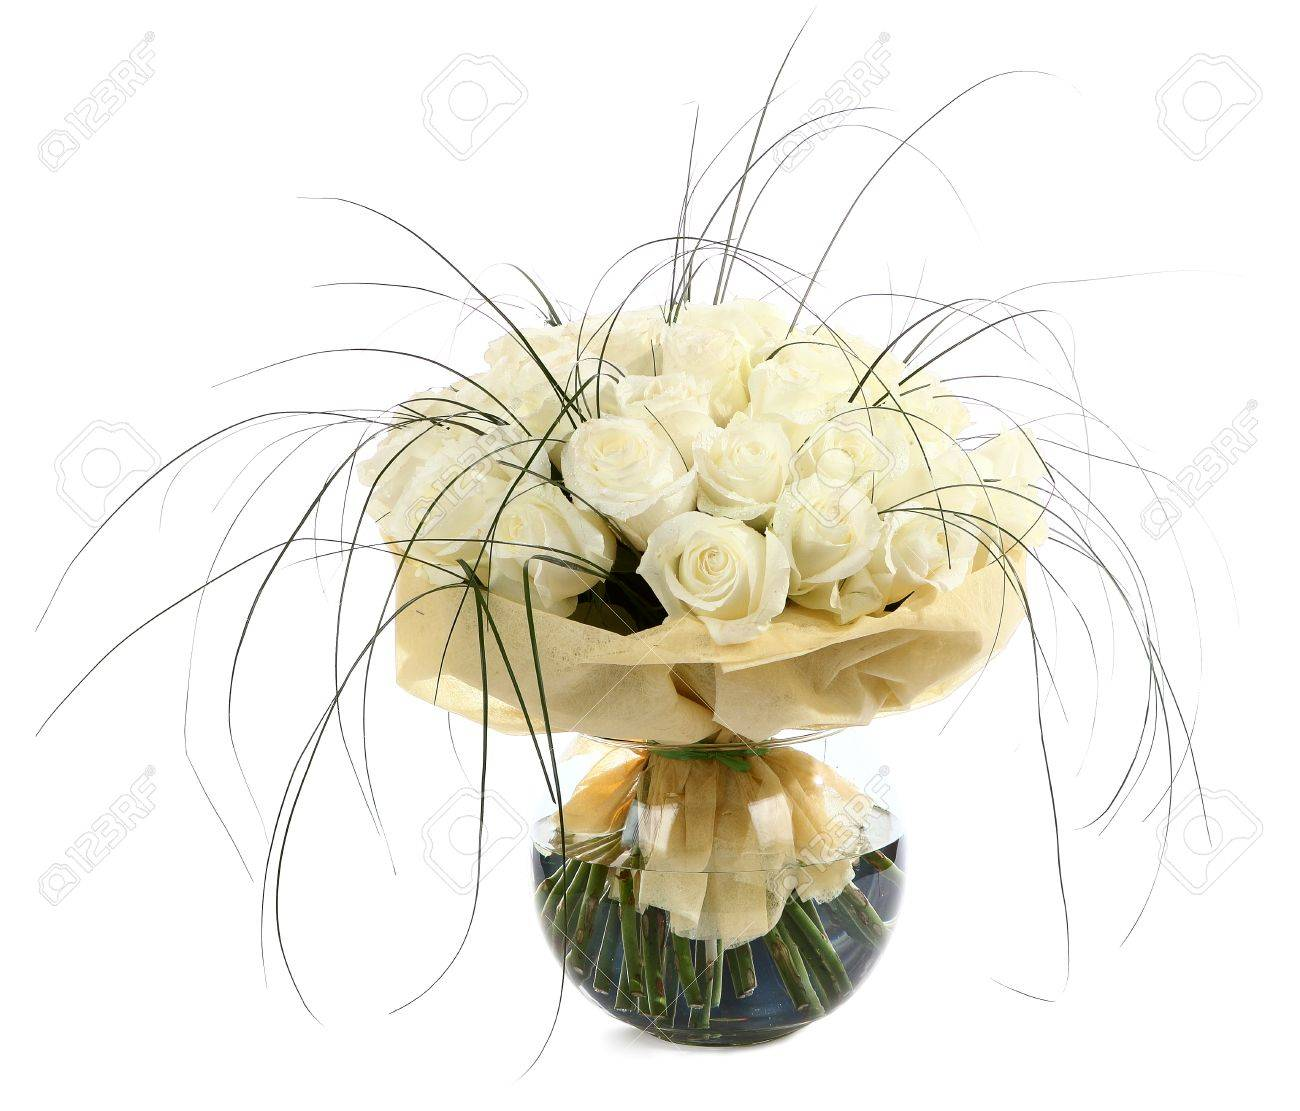 A Large Bouquet Of White Roses In A Transparent Glass Vase The